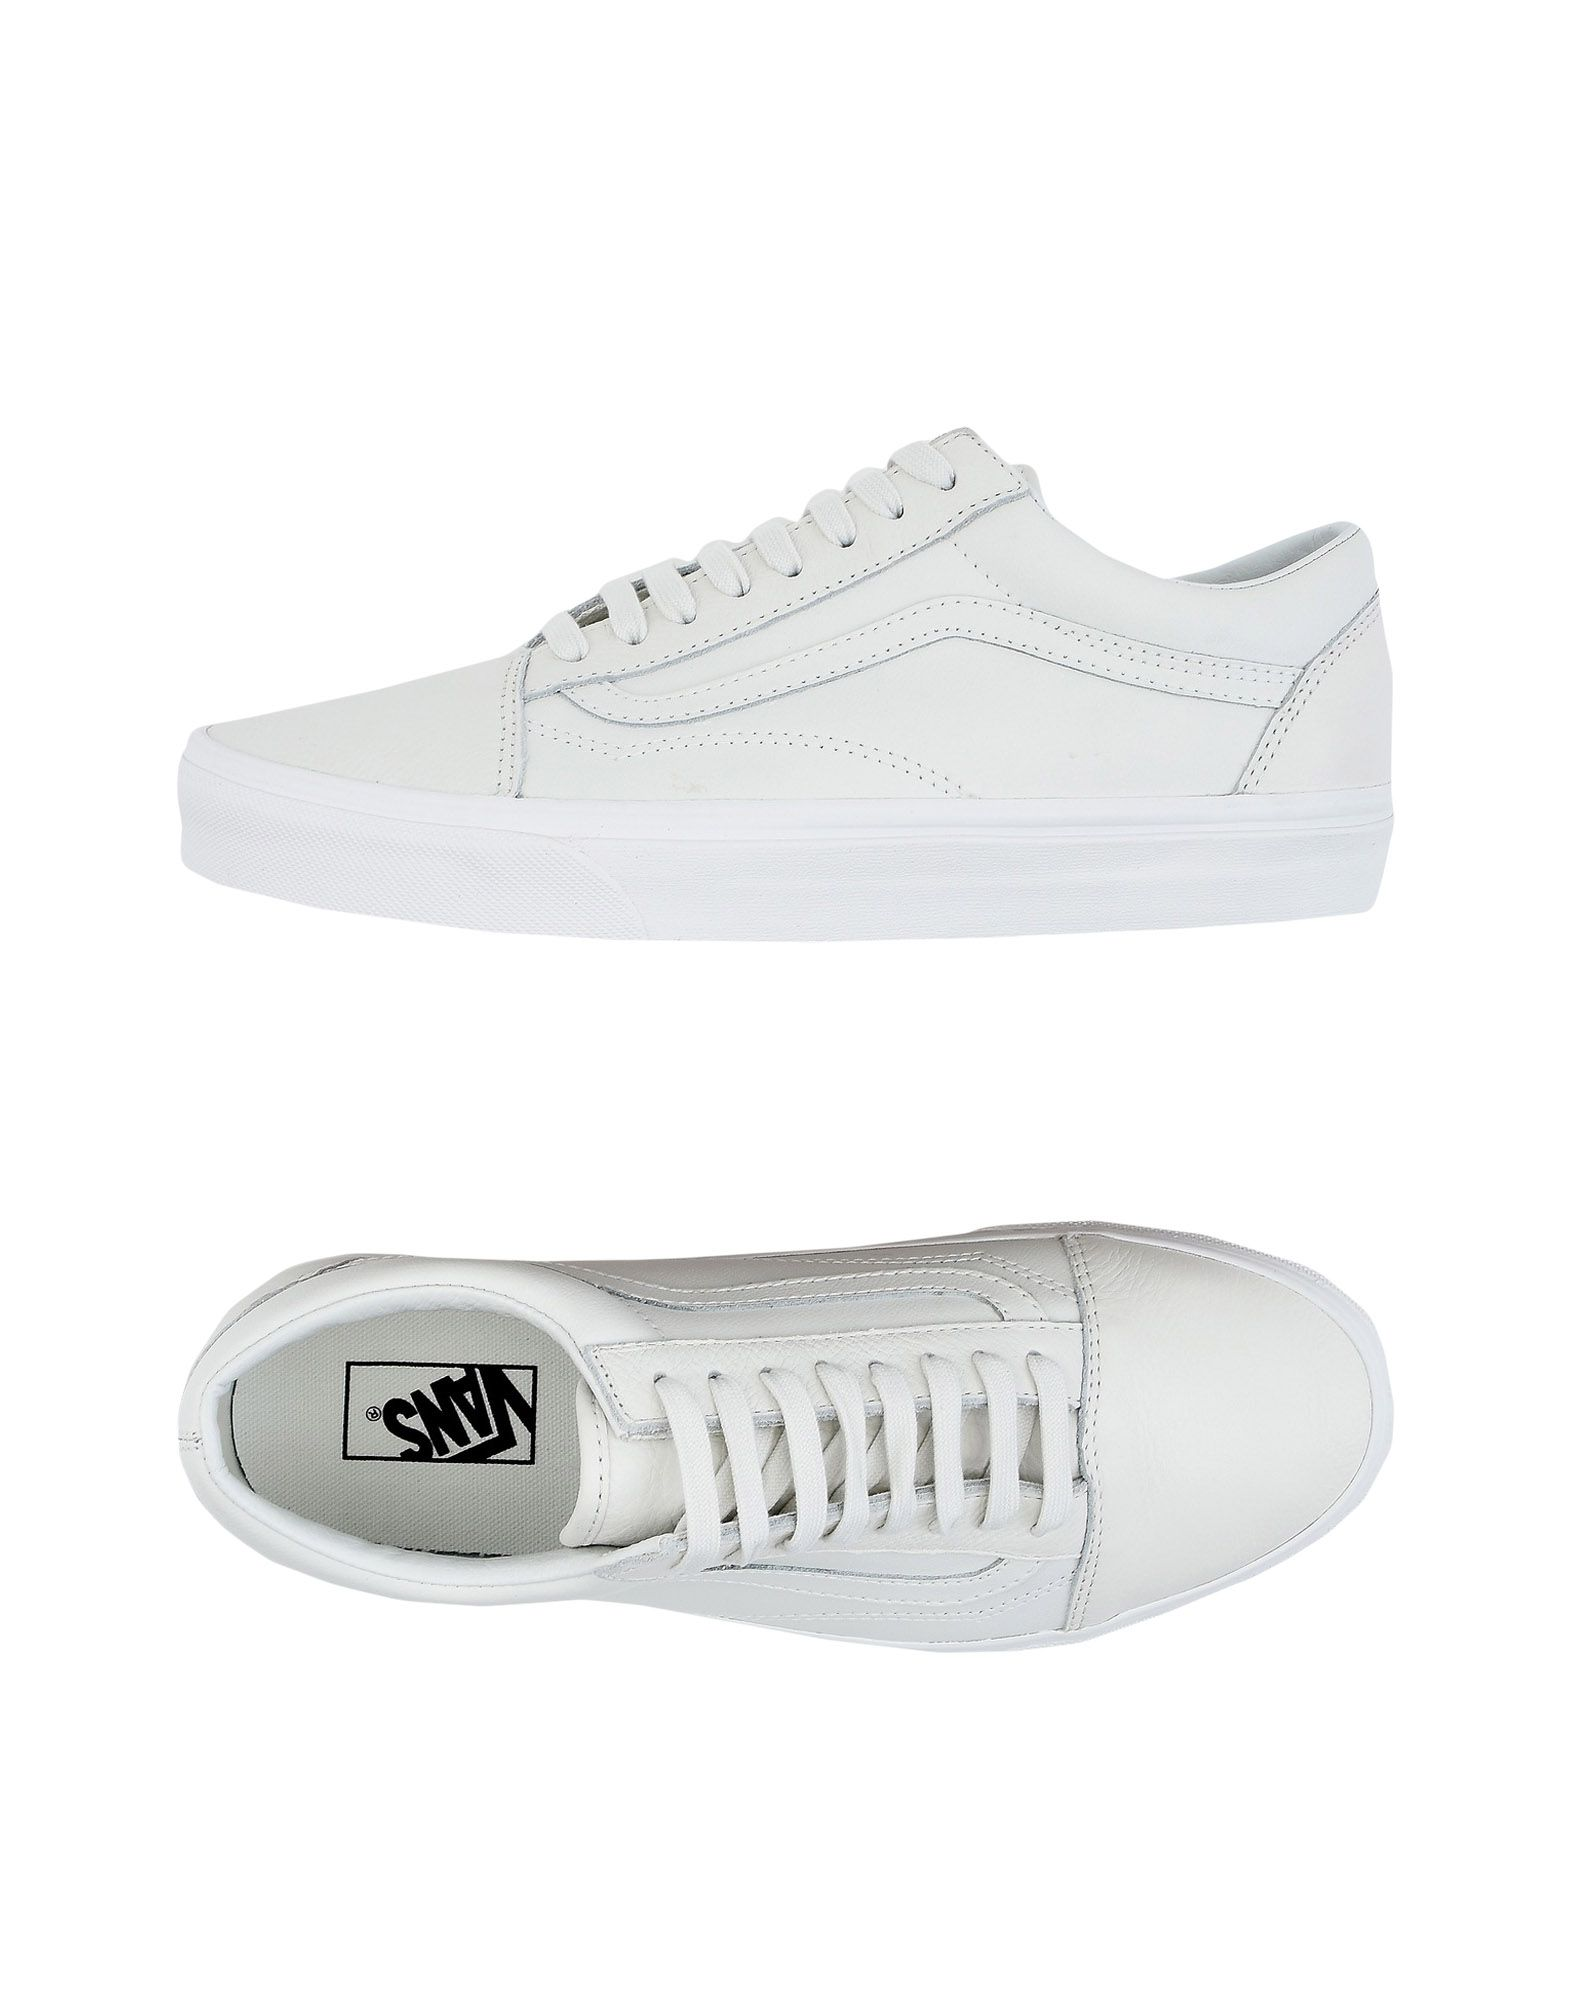 Sneakers Vans Ua Old Skool - Uomo - 11480868DT